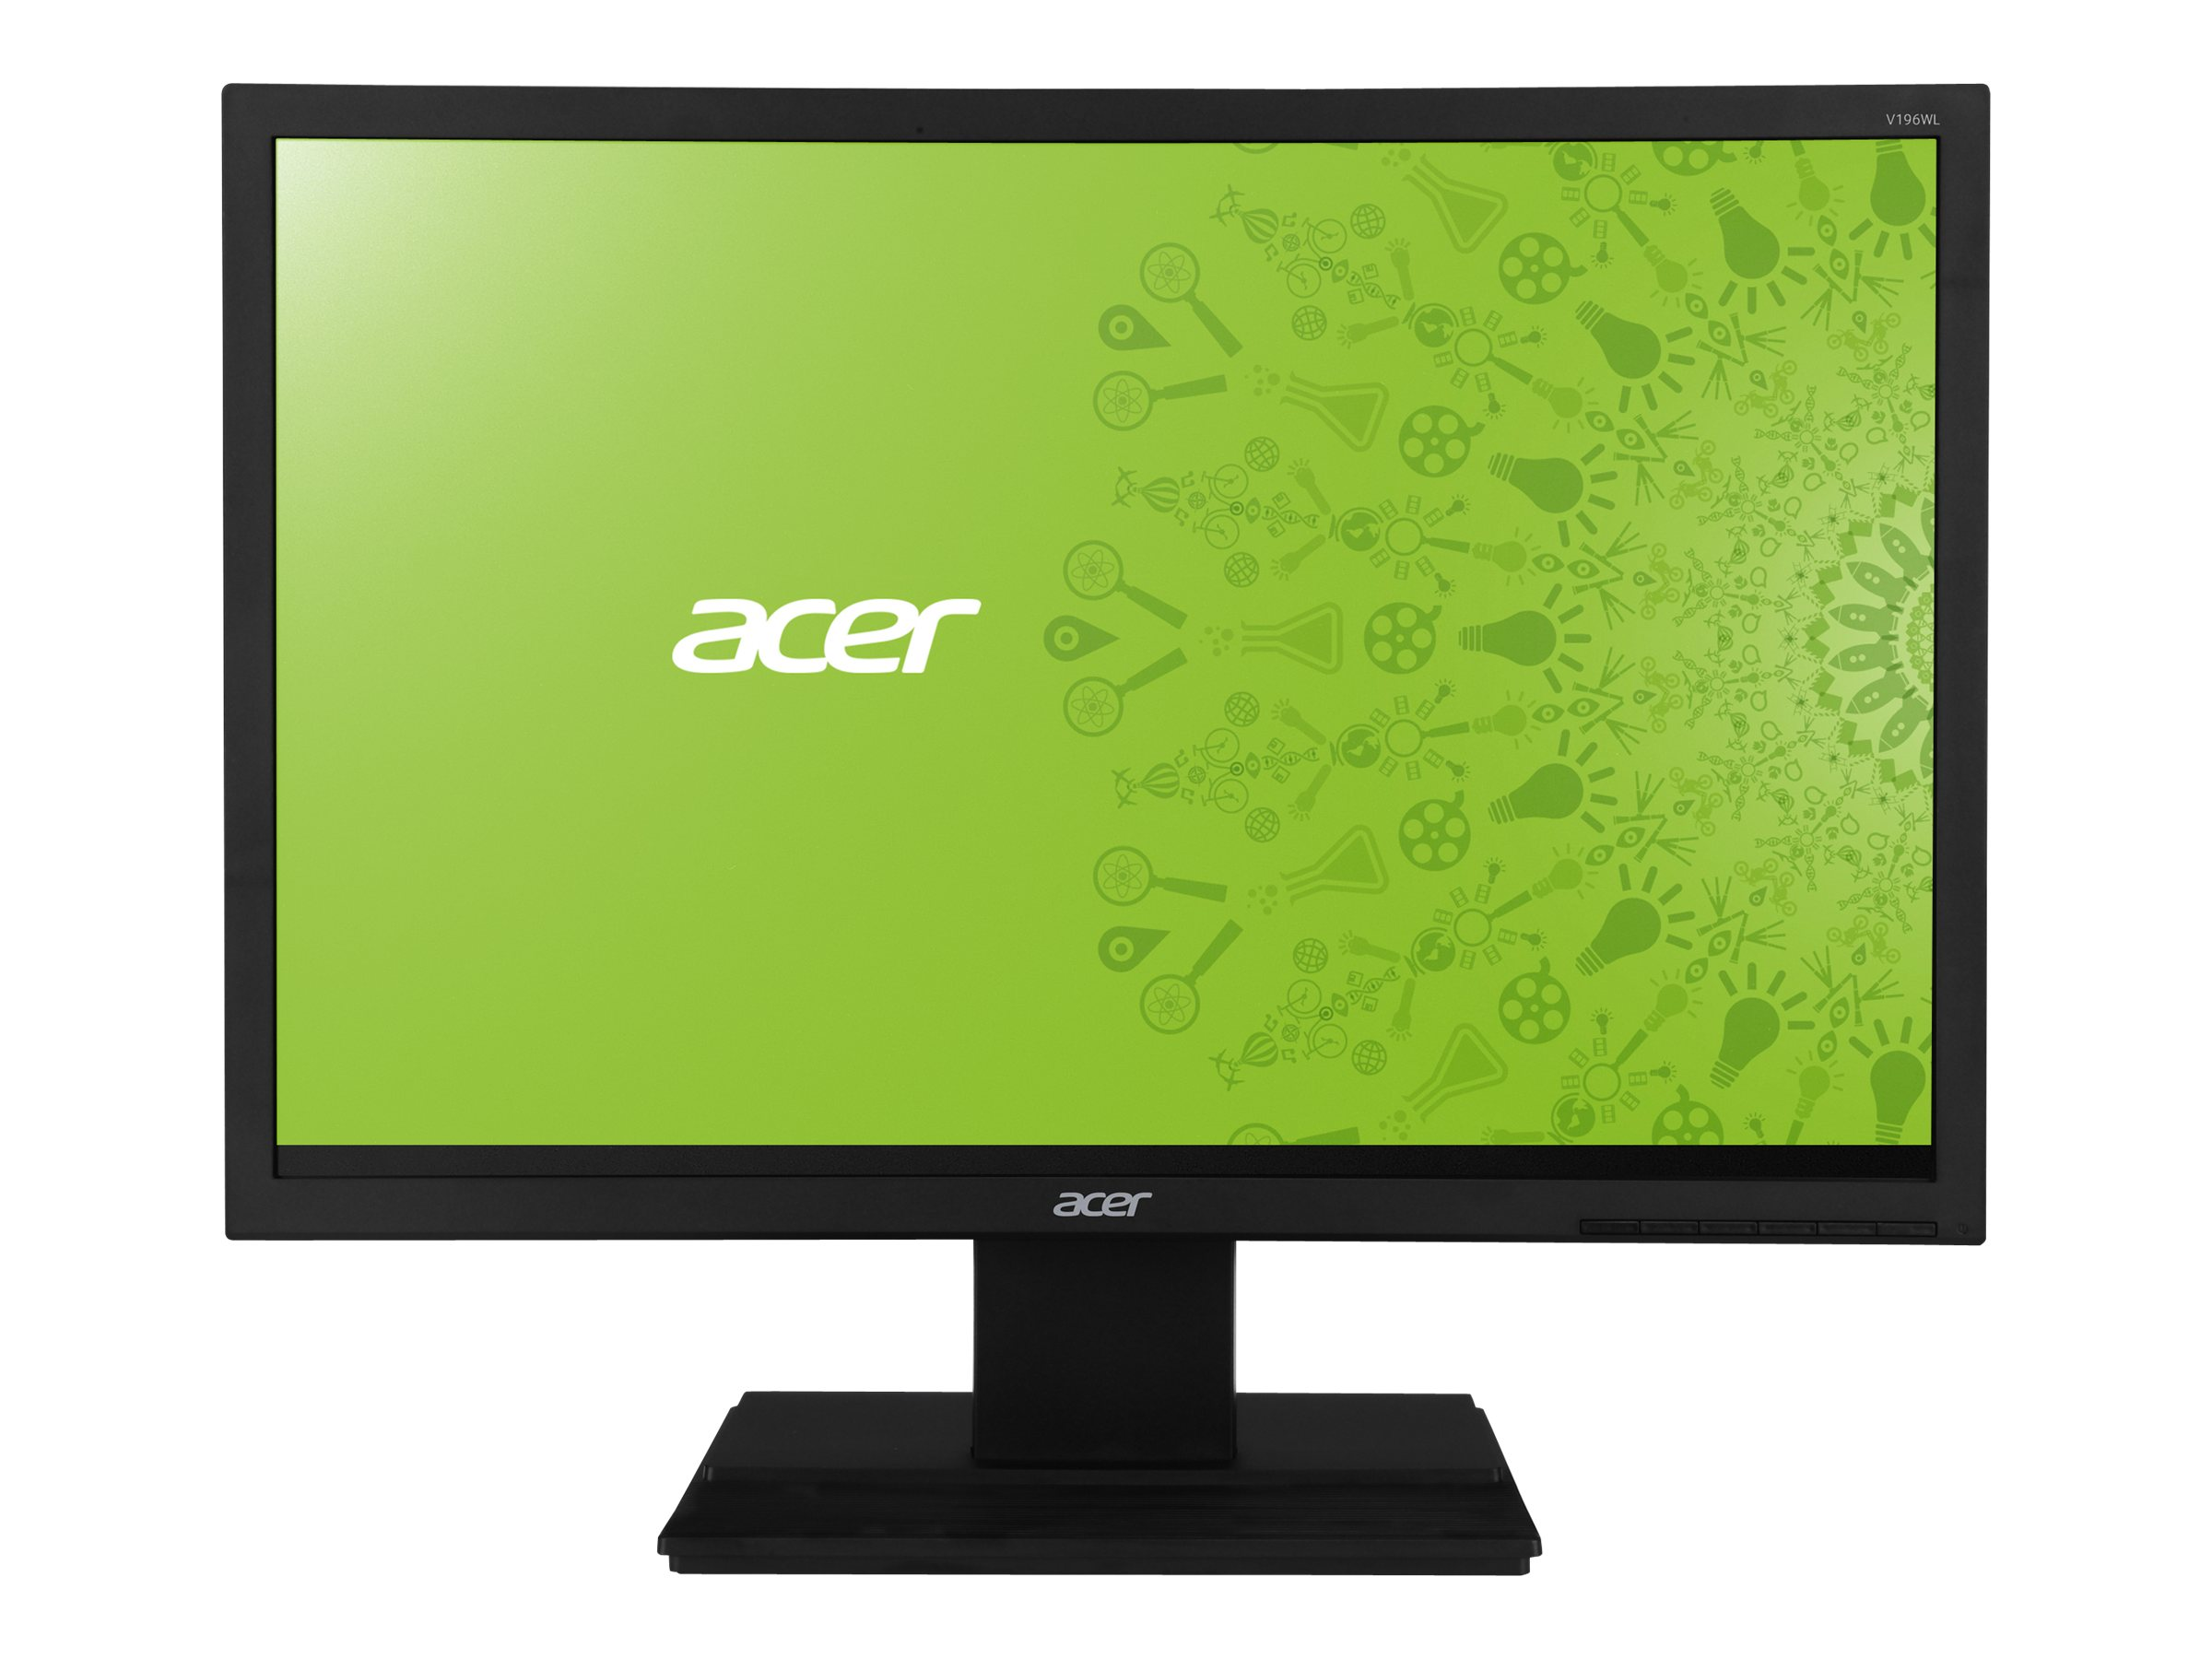 Acer 19 V196WL B LED-LCD Monitor, Black